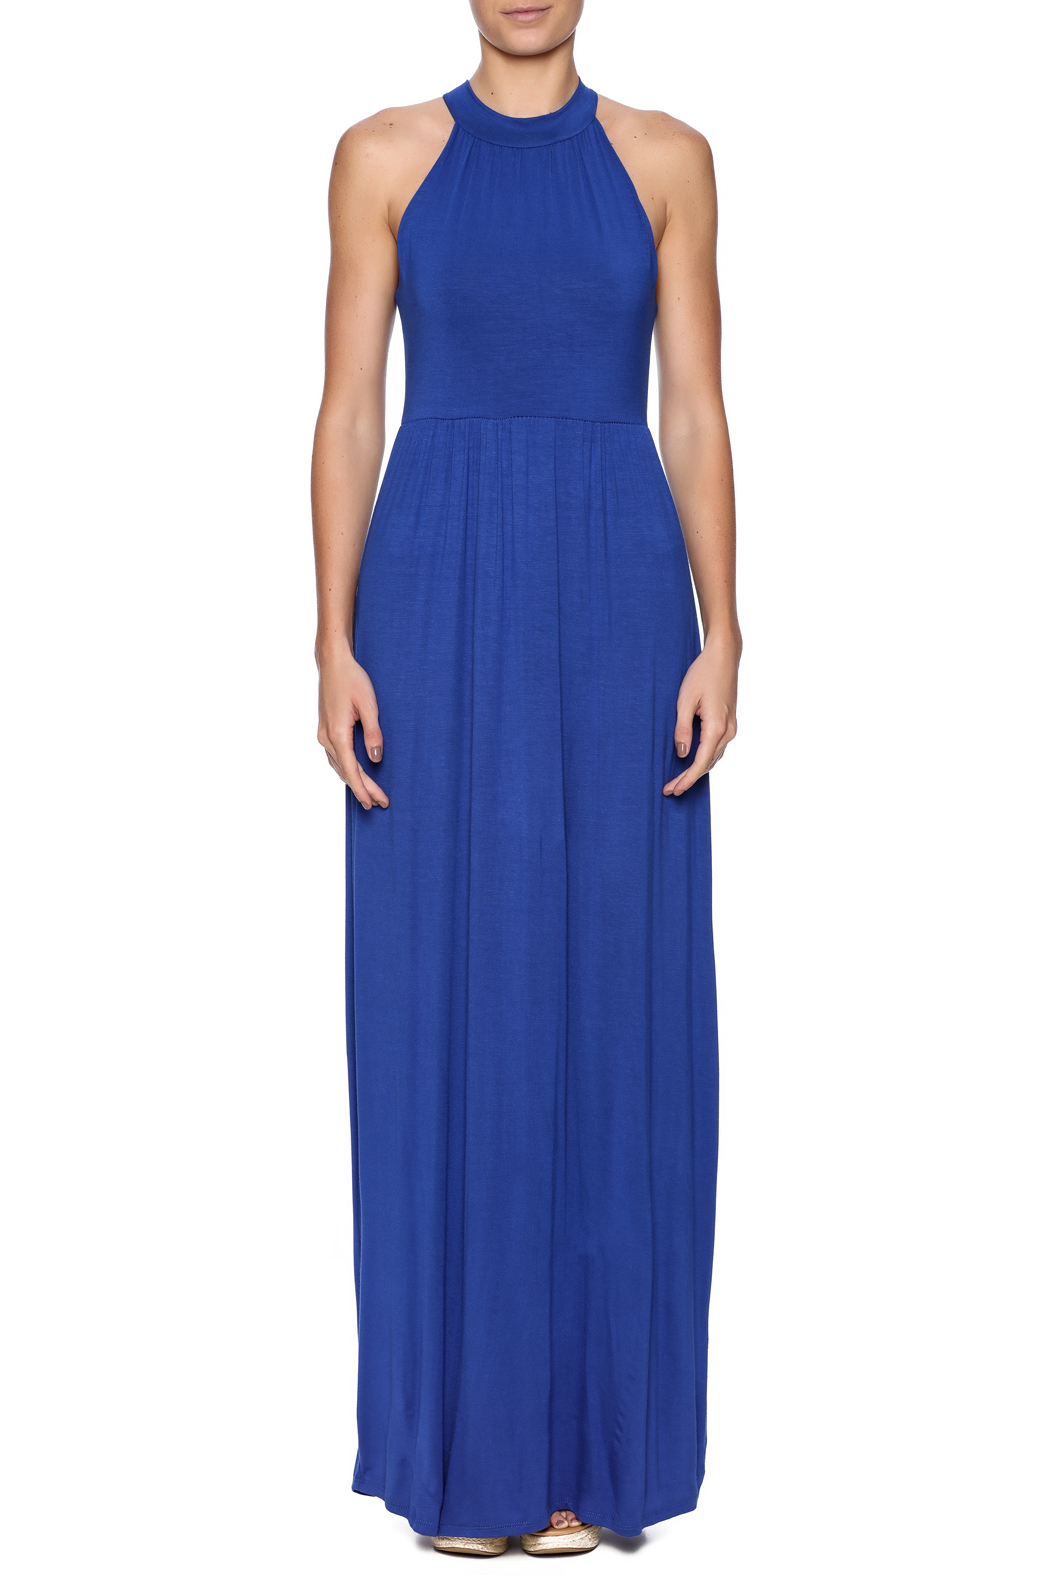 Bellamie Kelly Maxi Dress - Front Cropped Image